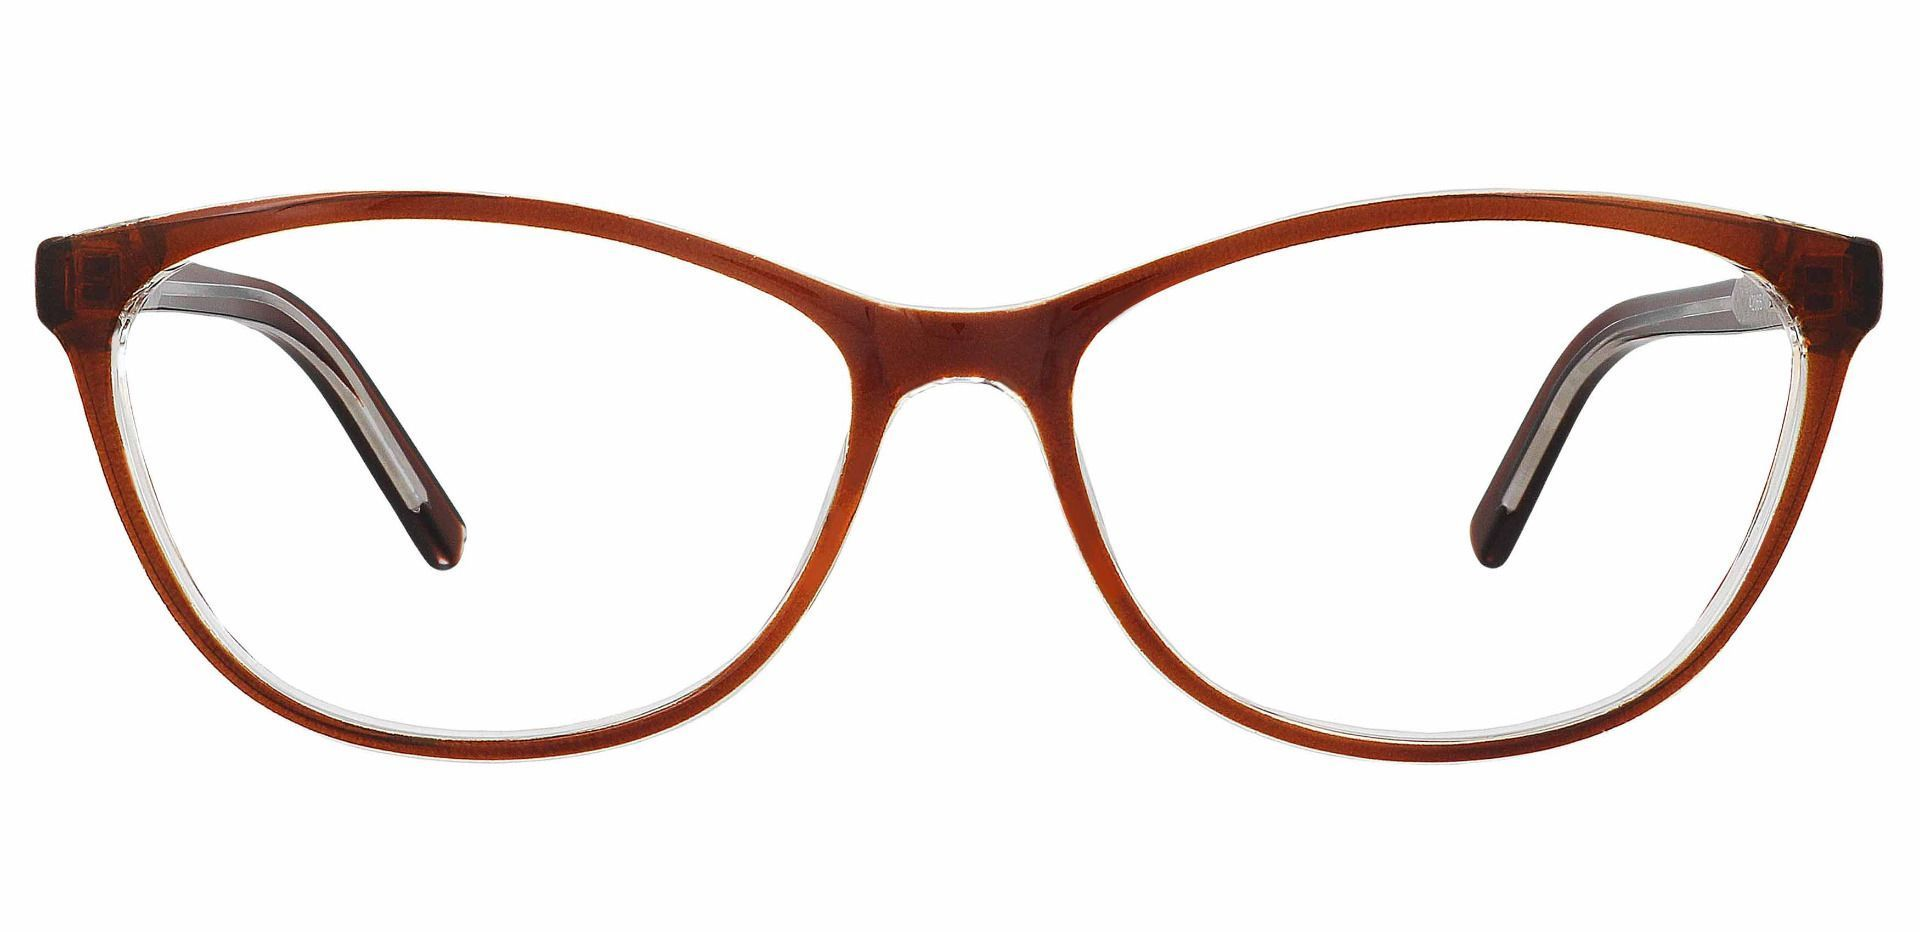 Sally Oval Blue Light Blocking Glasses - Brown